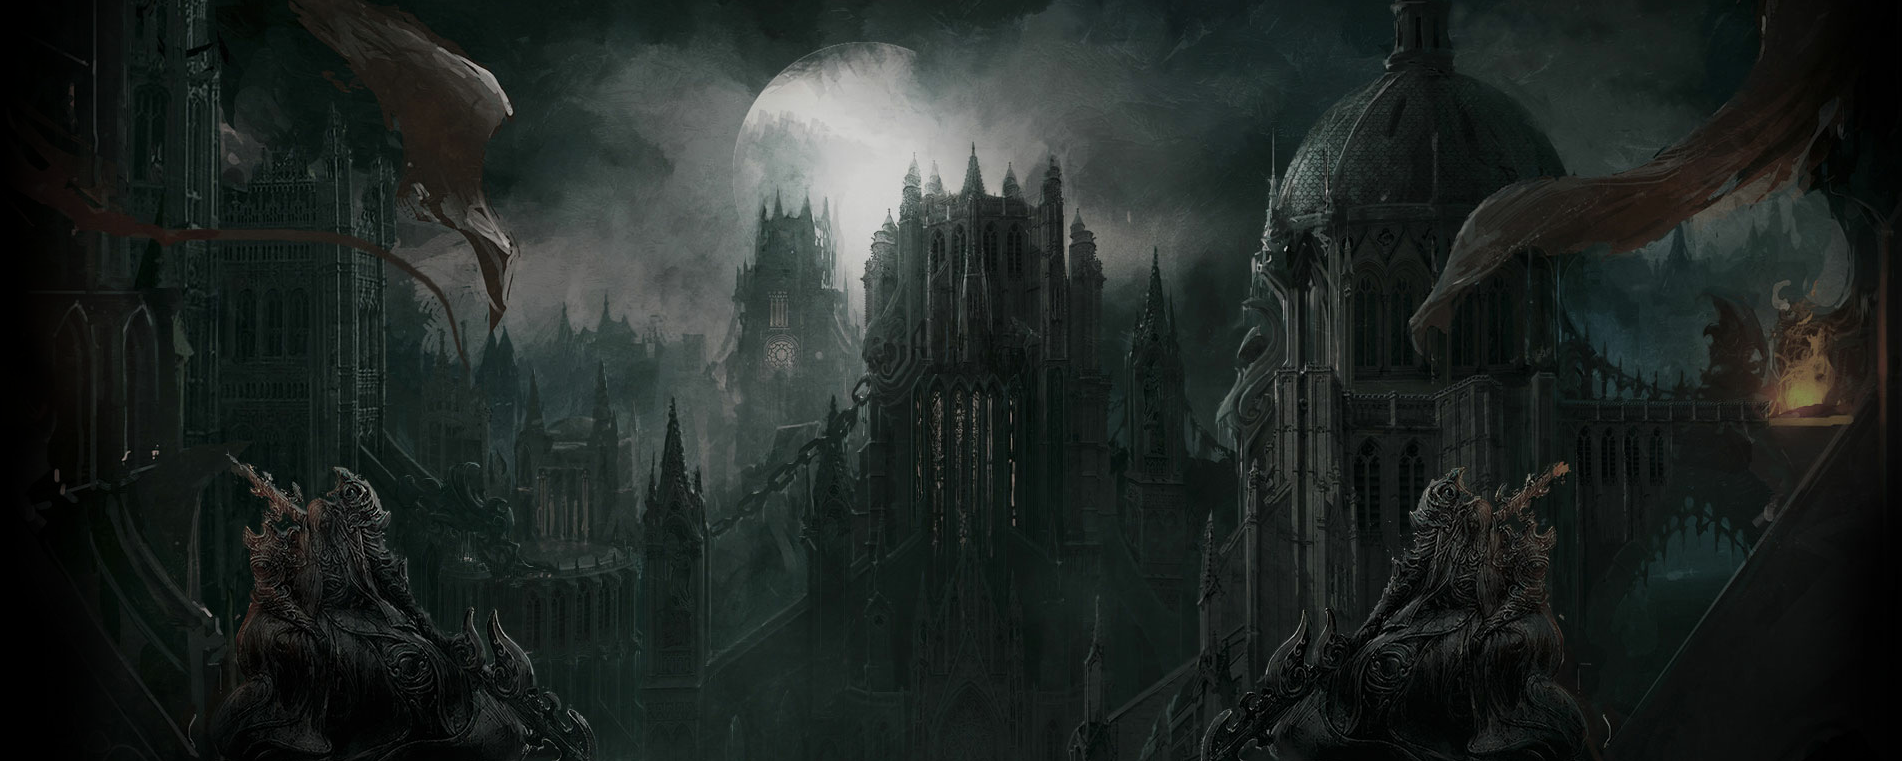 114941-castlevania-lords-of-shadow-2.png (1902×761)